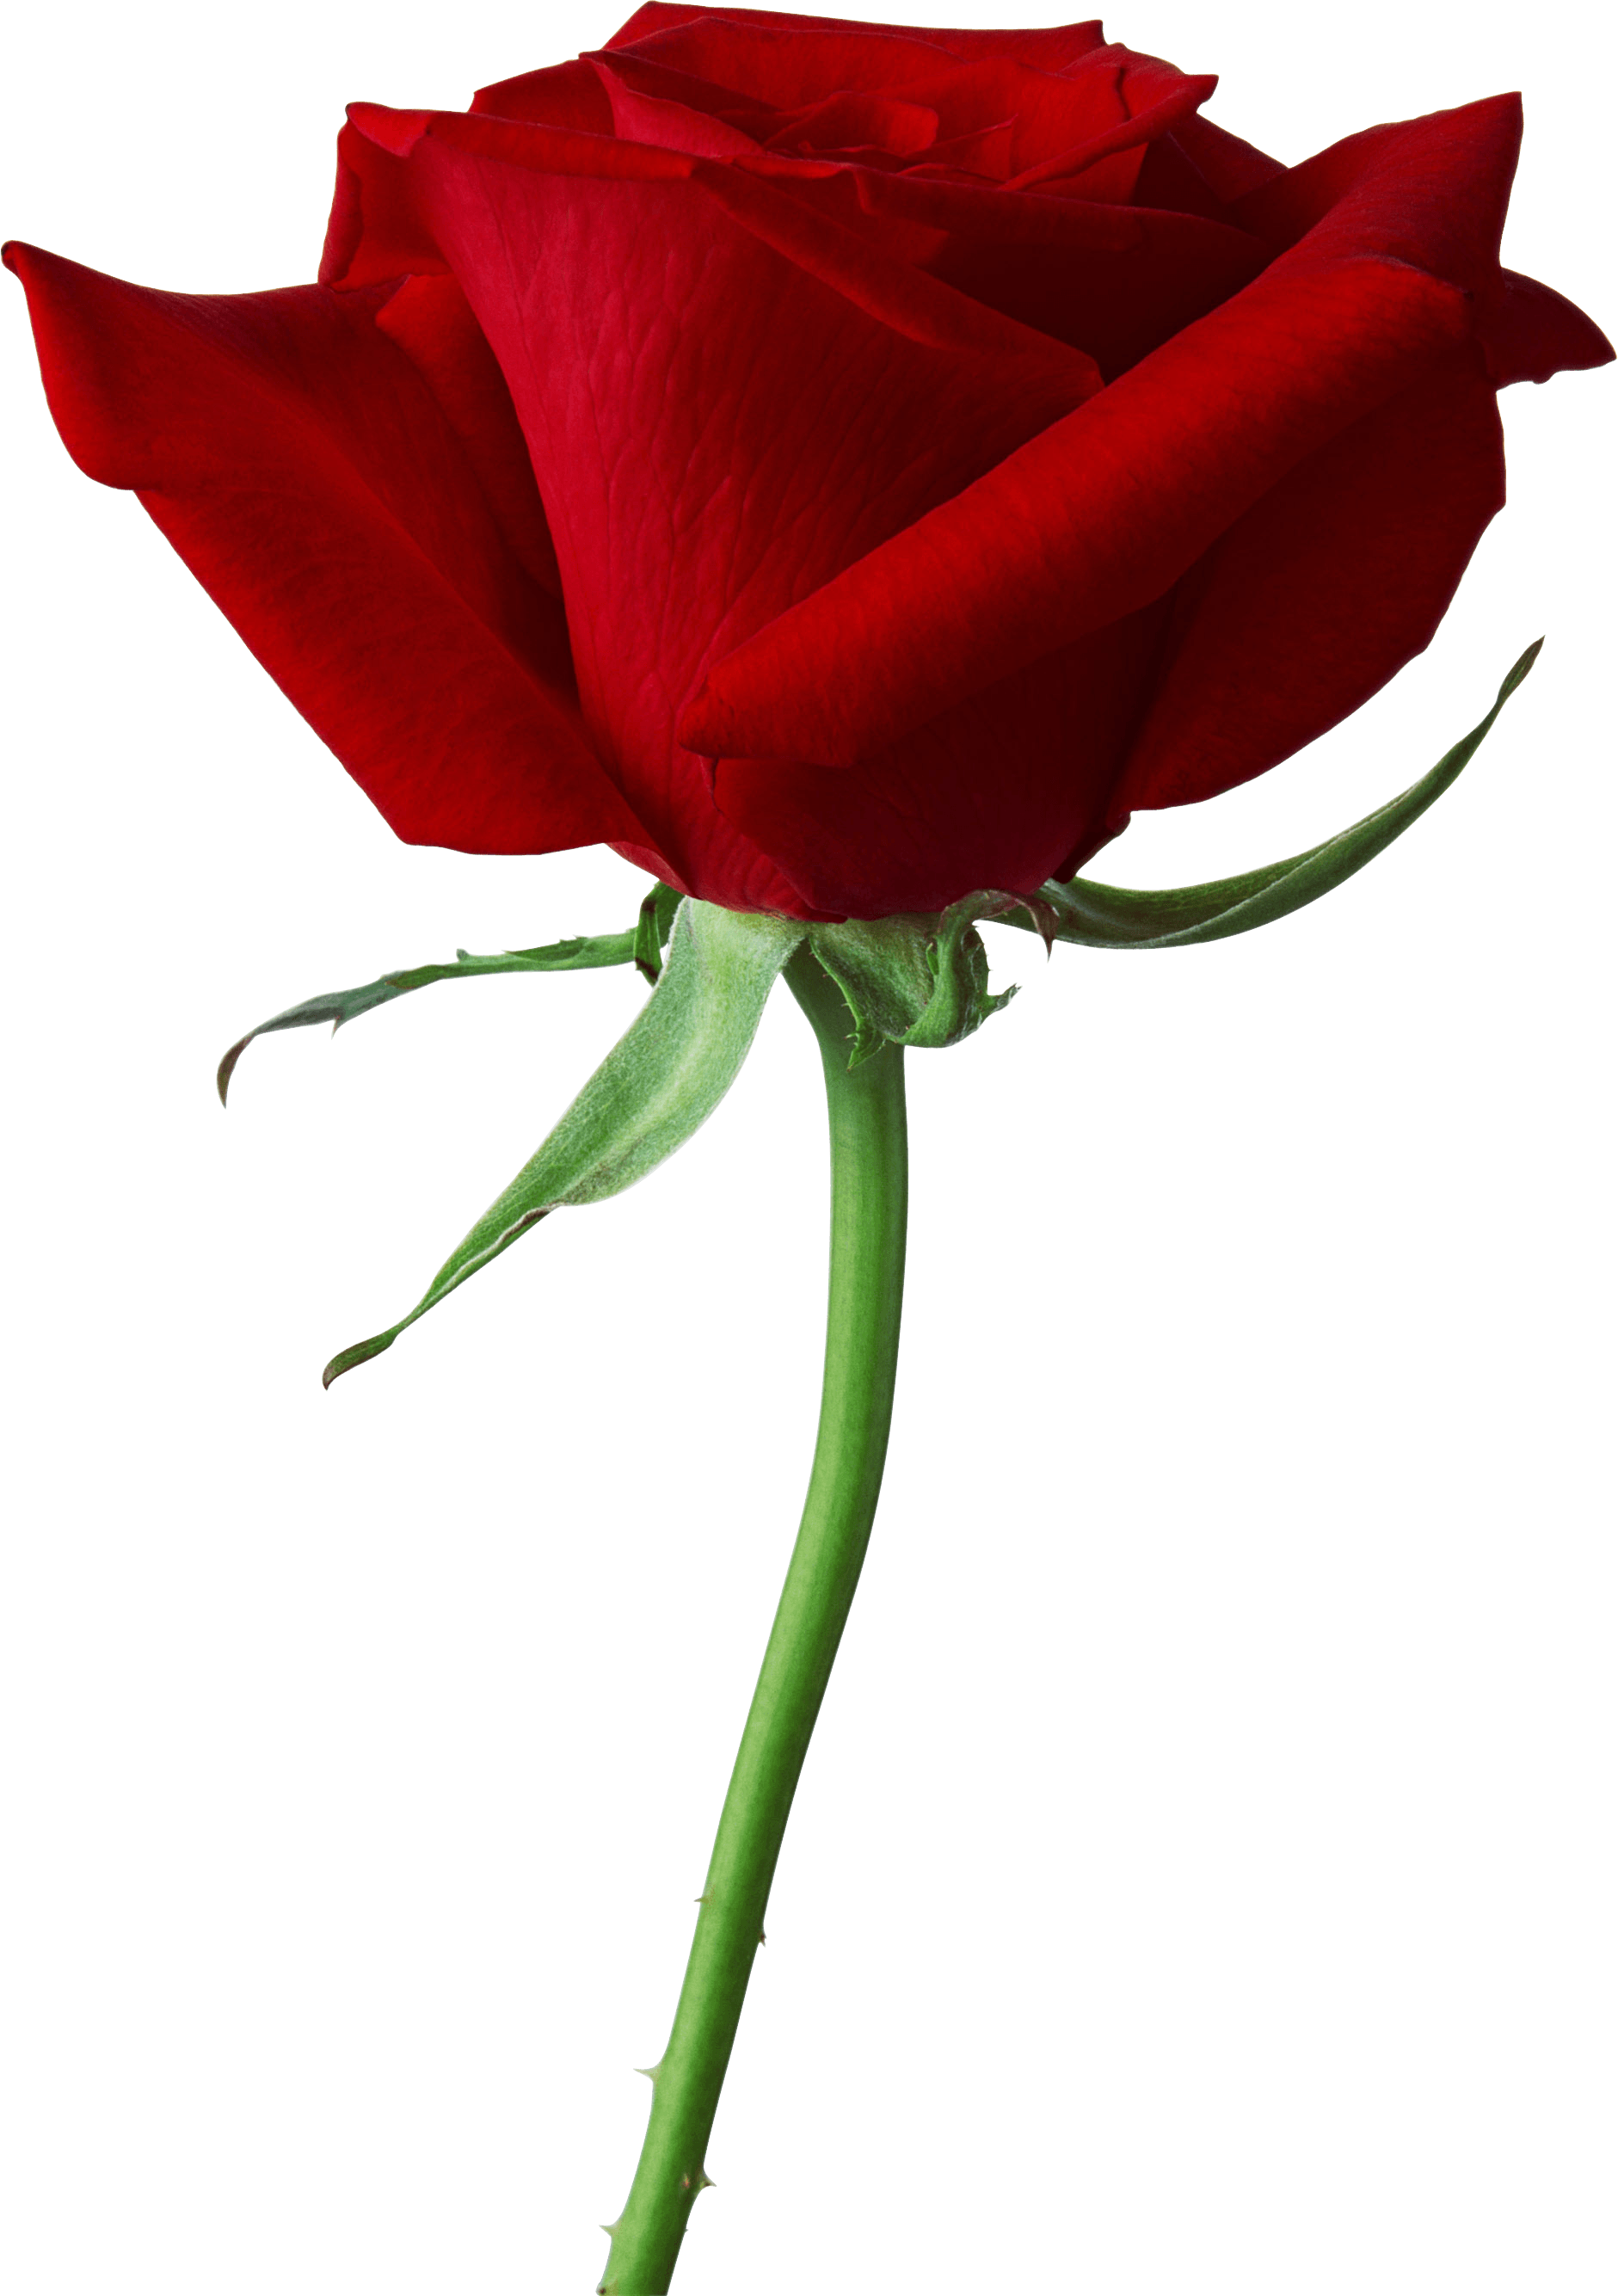 Download Rose Png Image Picture Download HQ PNG Image.